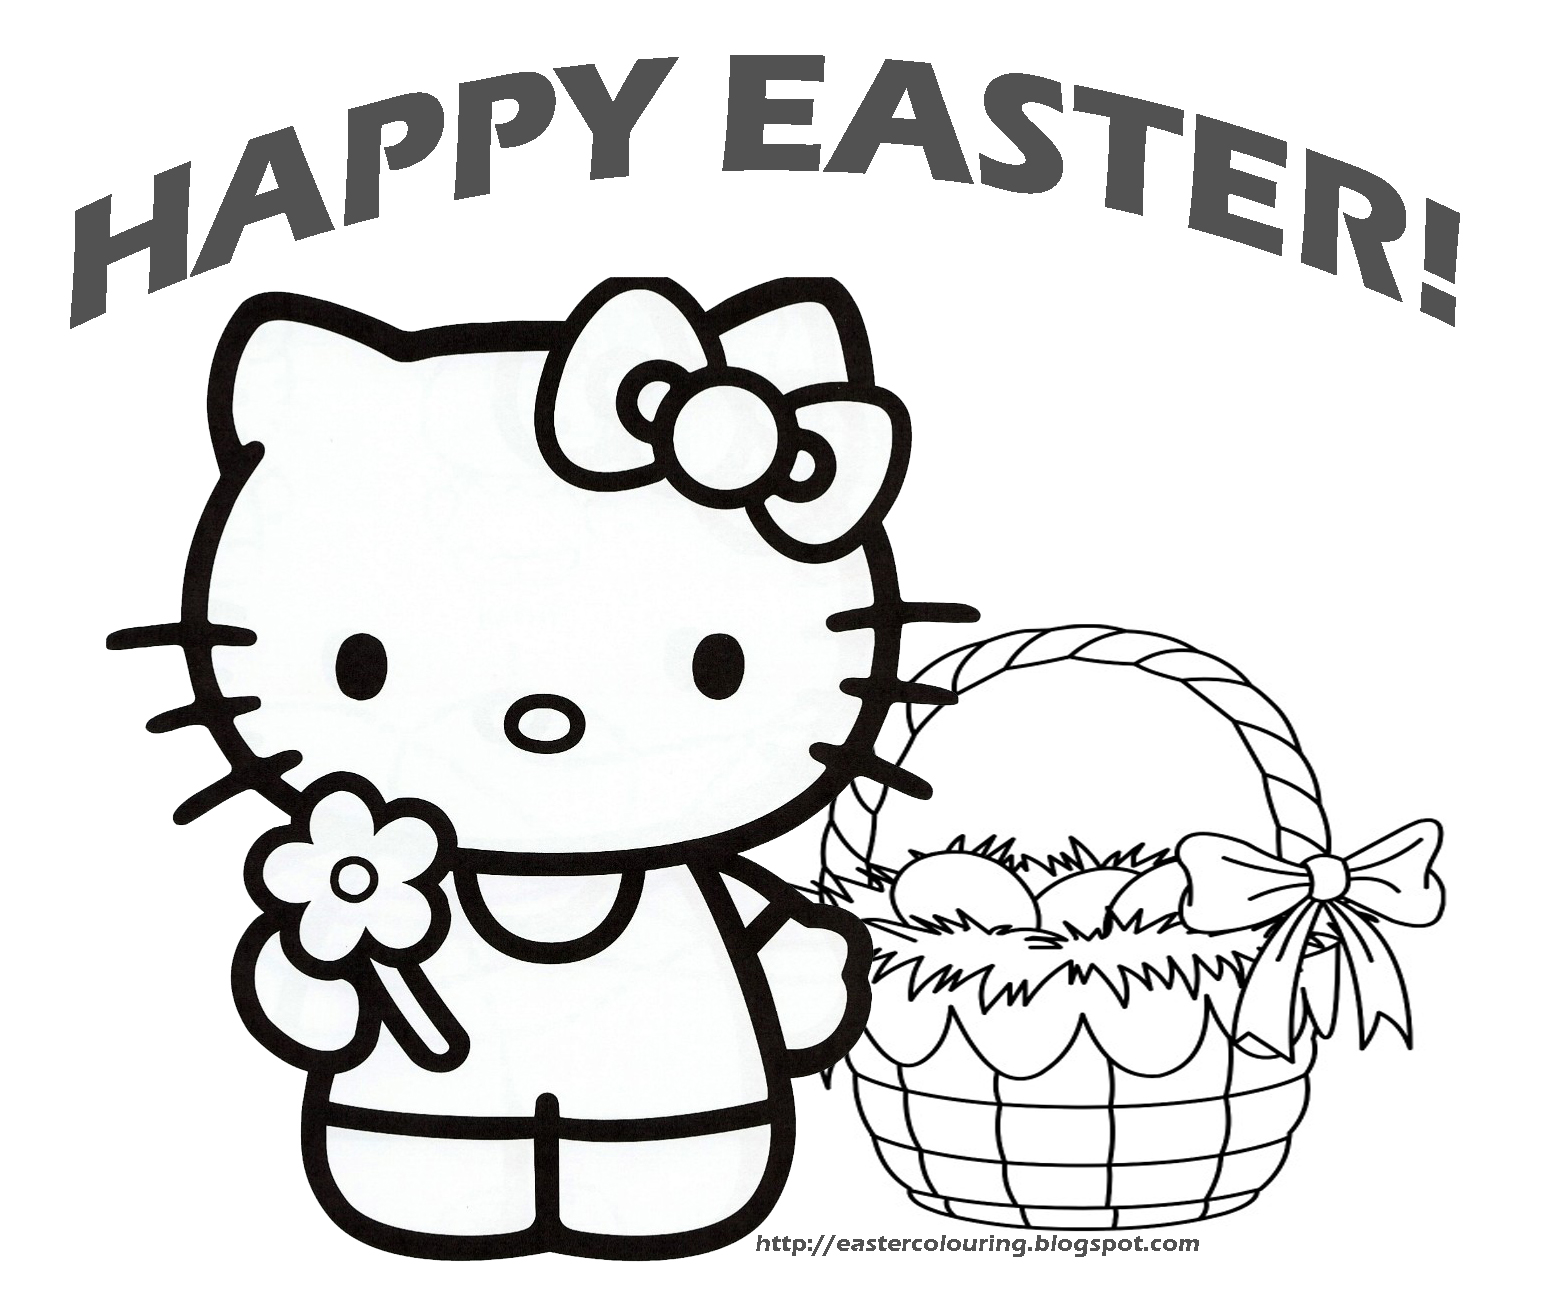 EASTER COLOURING EASTER HELLO